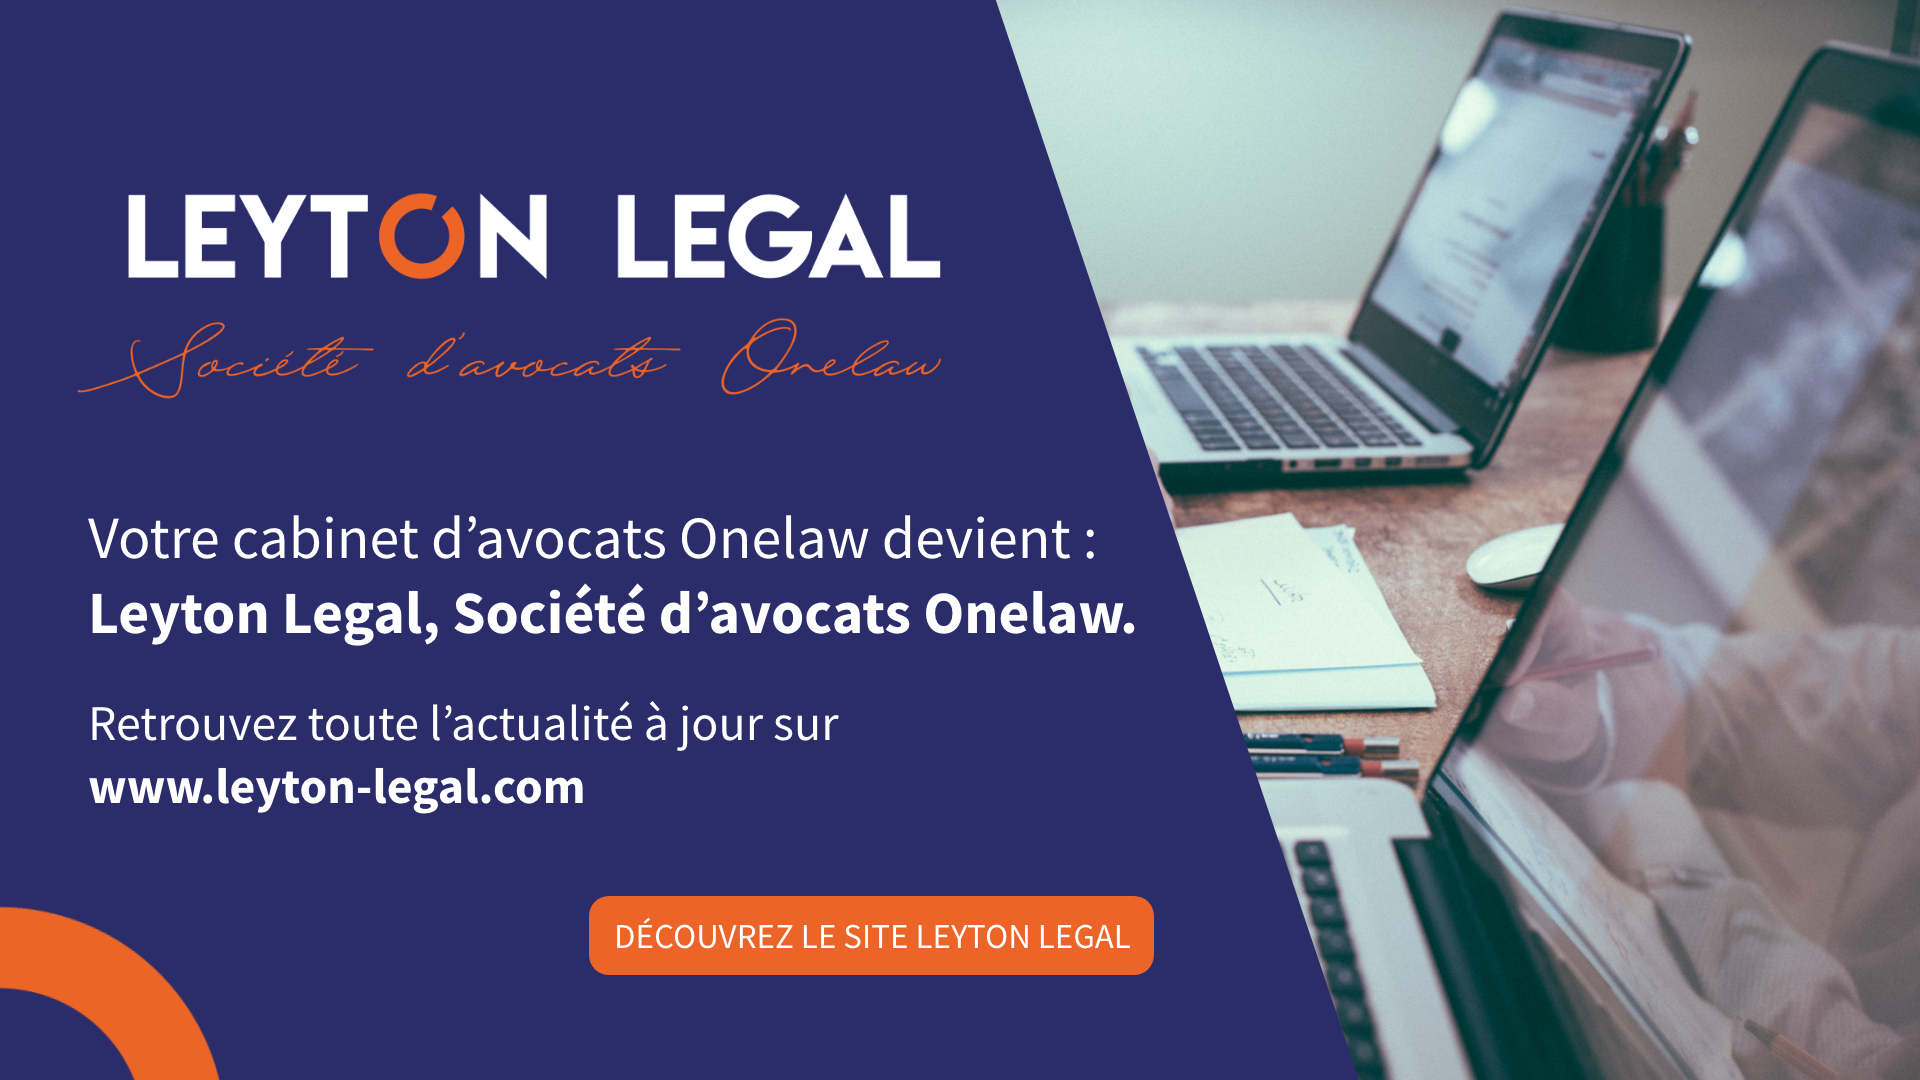 onelaw changement nom leyton legal